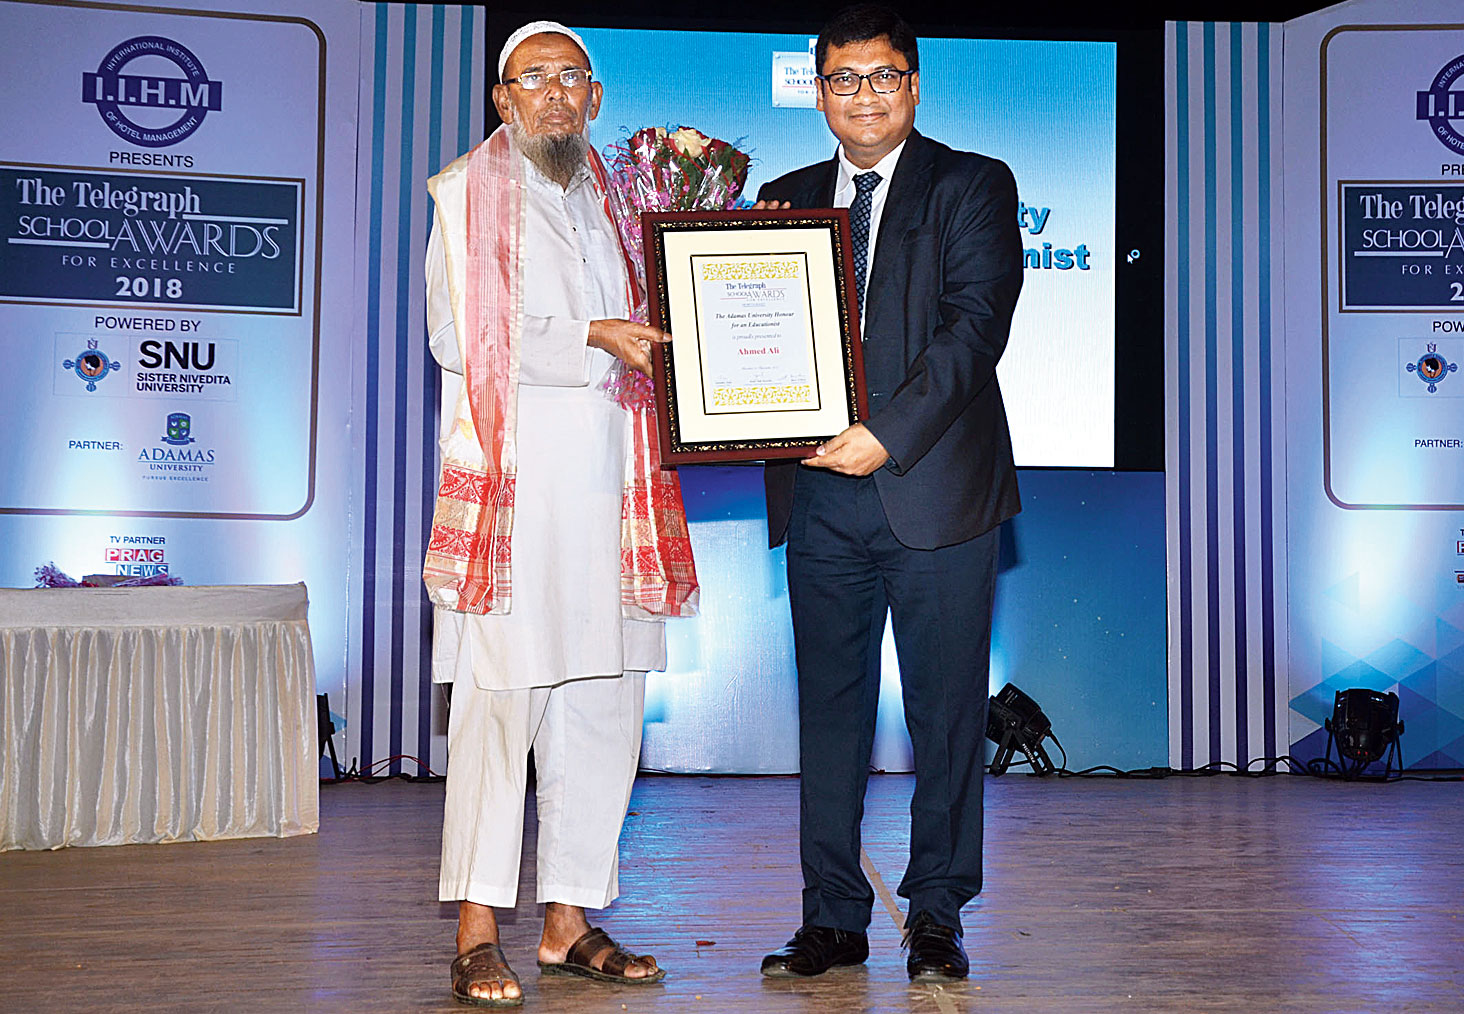 Ahmed Ali being honoured with the Adamas University Honour for Educationist by Adamas University vice-president Avijit Giri.